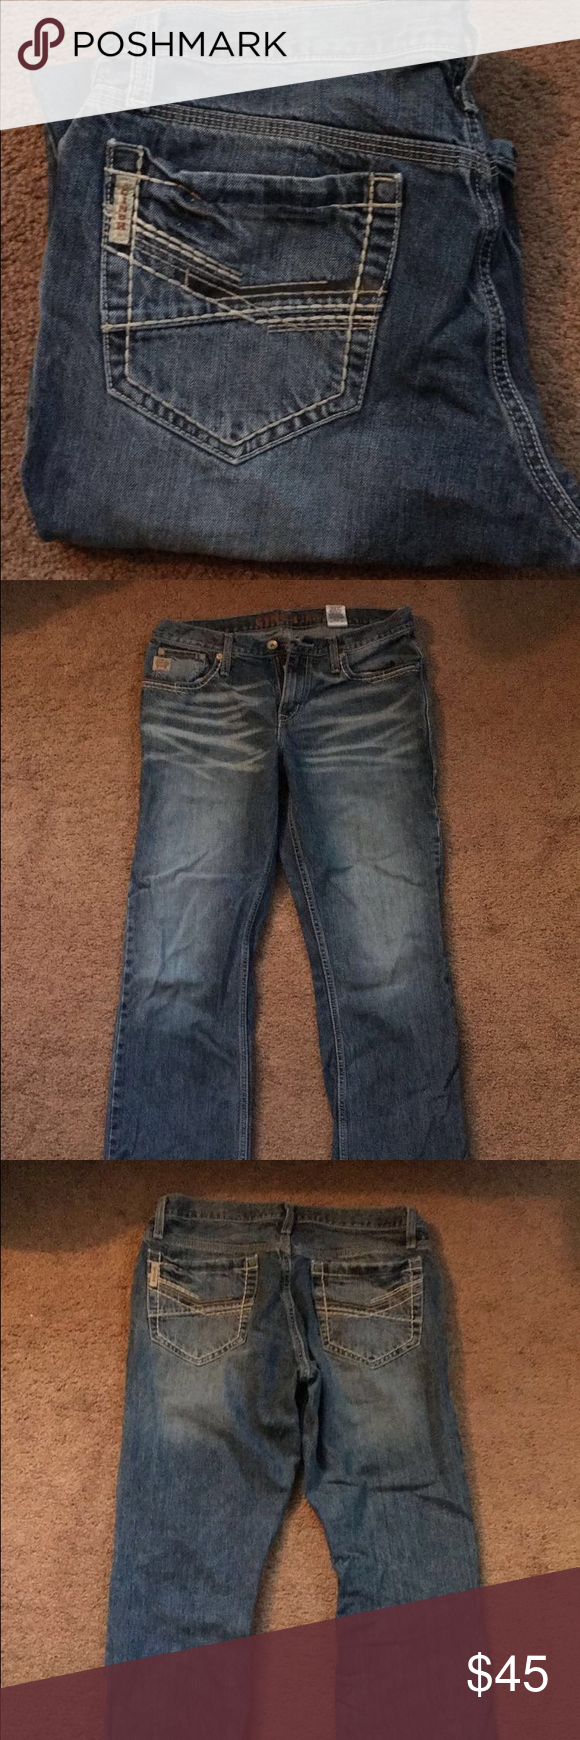 Mens Cinch Jeans Men's Cinch jeans! In excellent condition! Look like they are new! Very sharp looking jean. Size 32/36. Asking $45. Cinch Jeans Bootcut